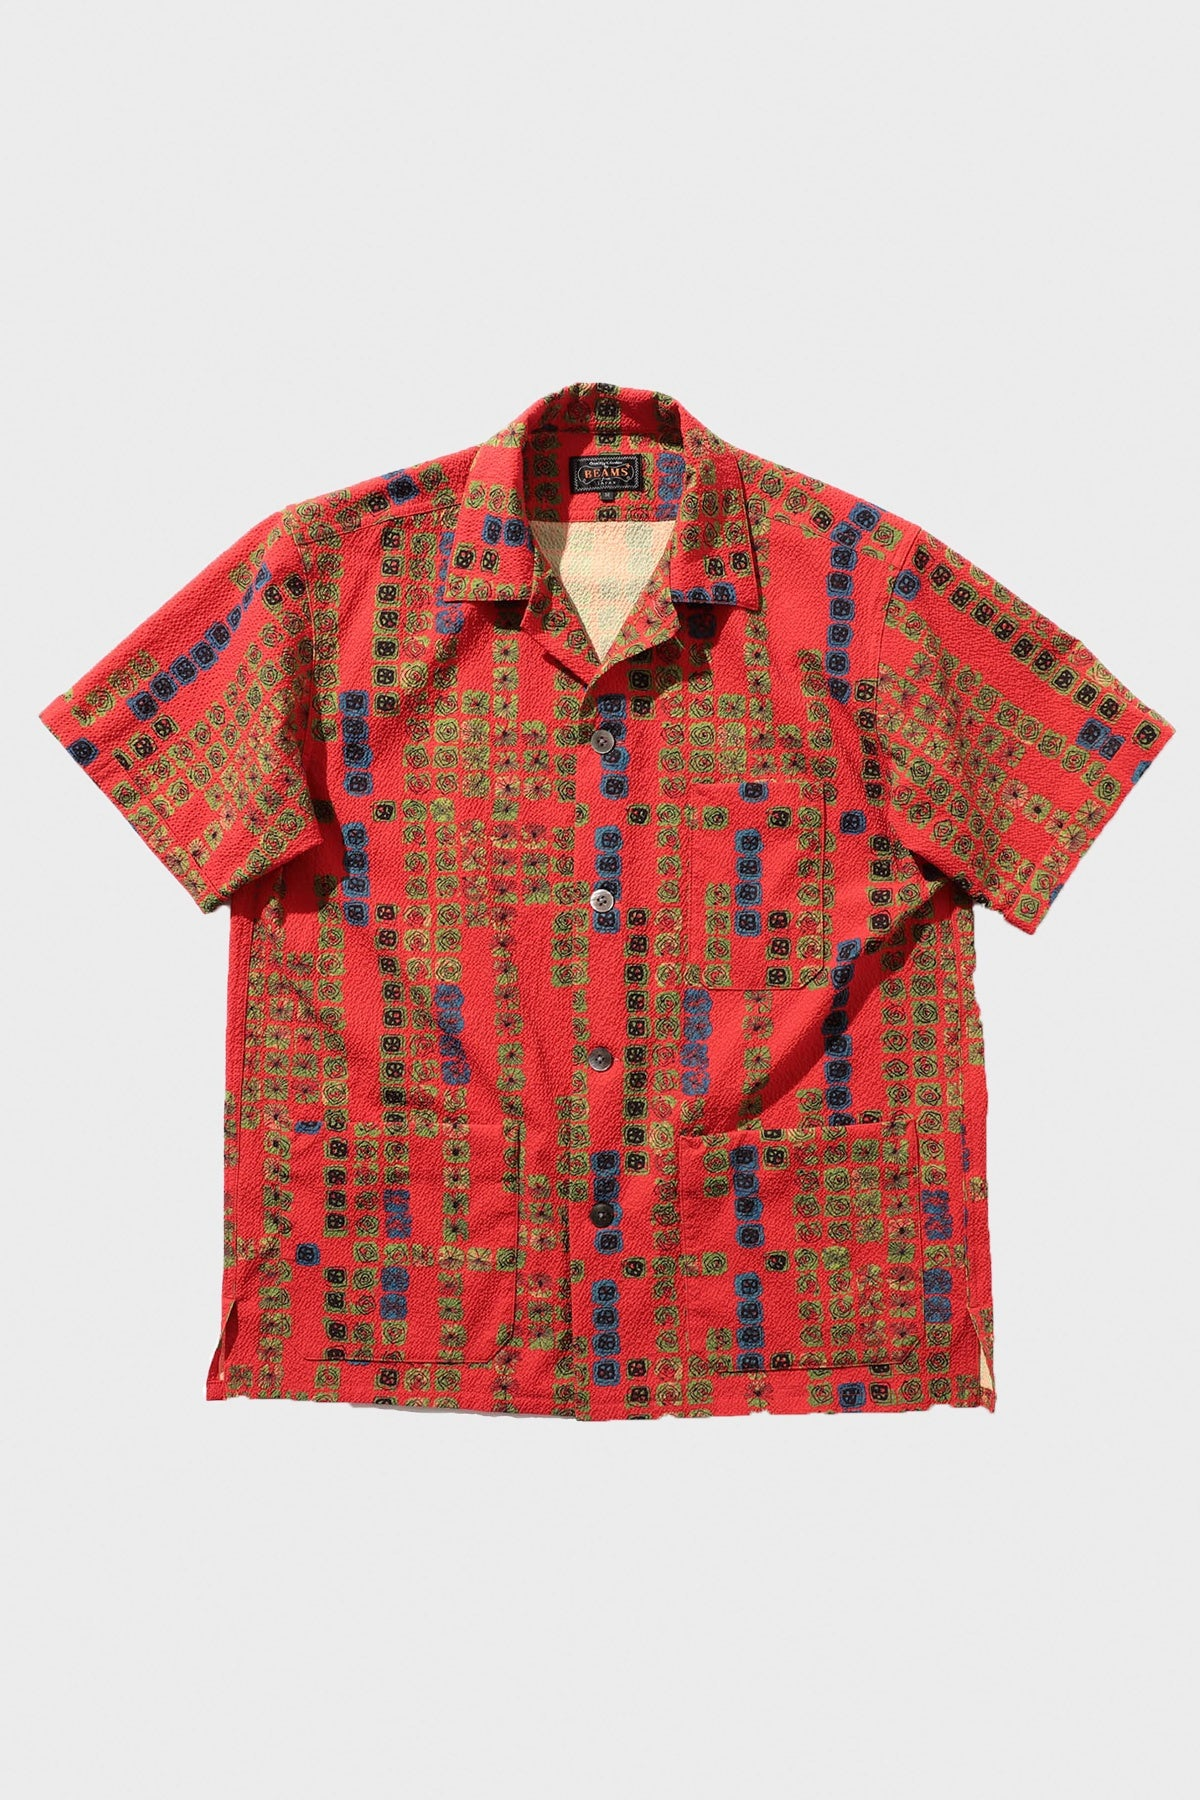 Beams Plus - Beach Jacket Seersucker Print - Red - Canoe Club